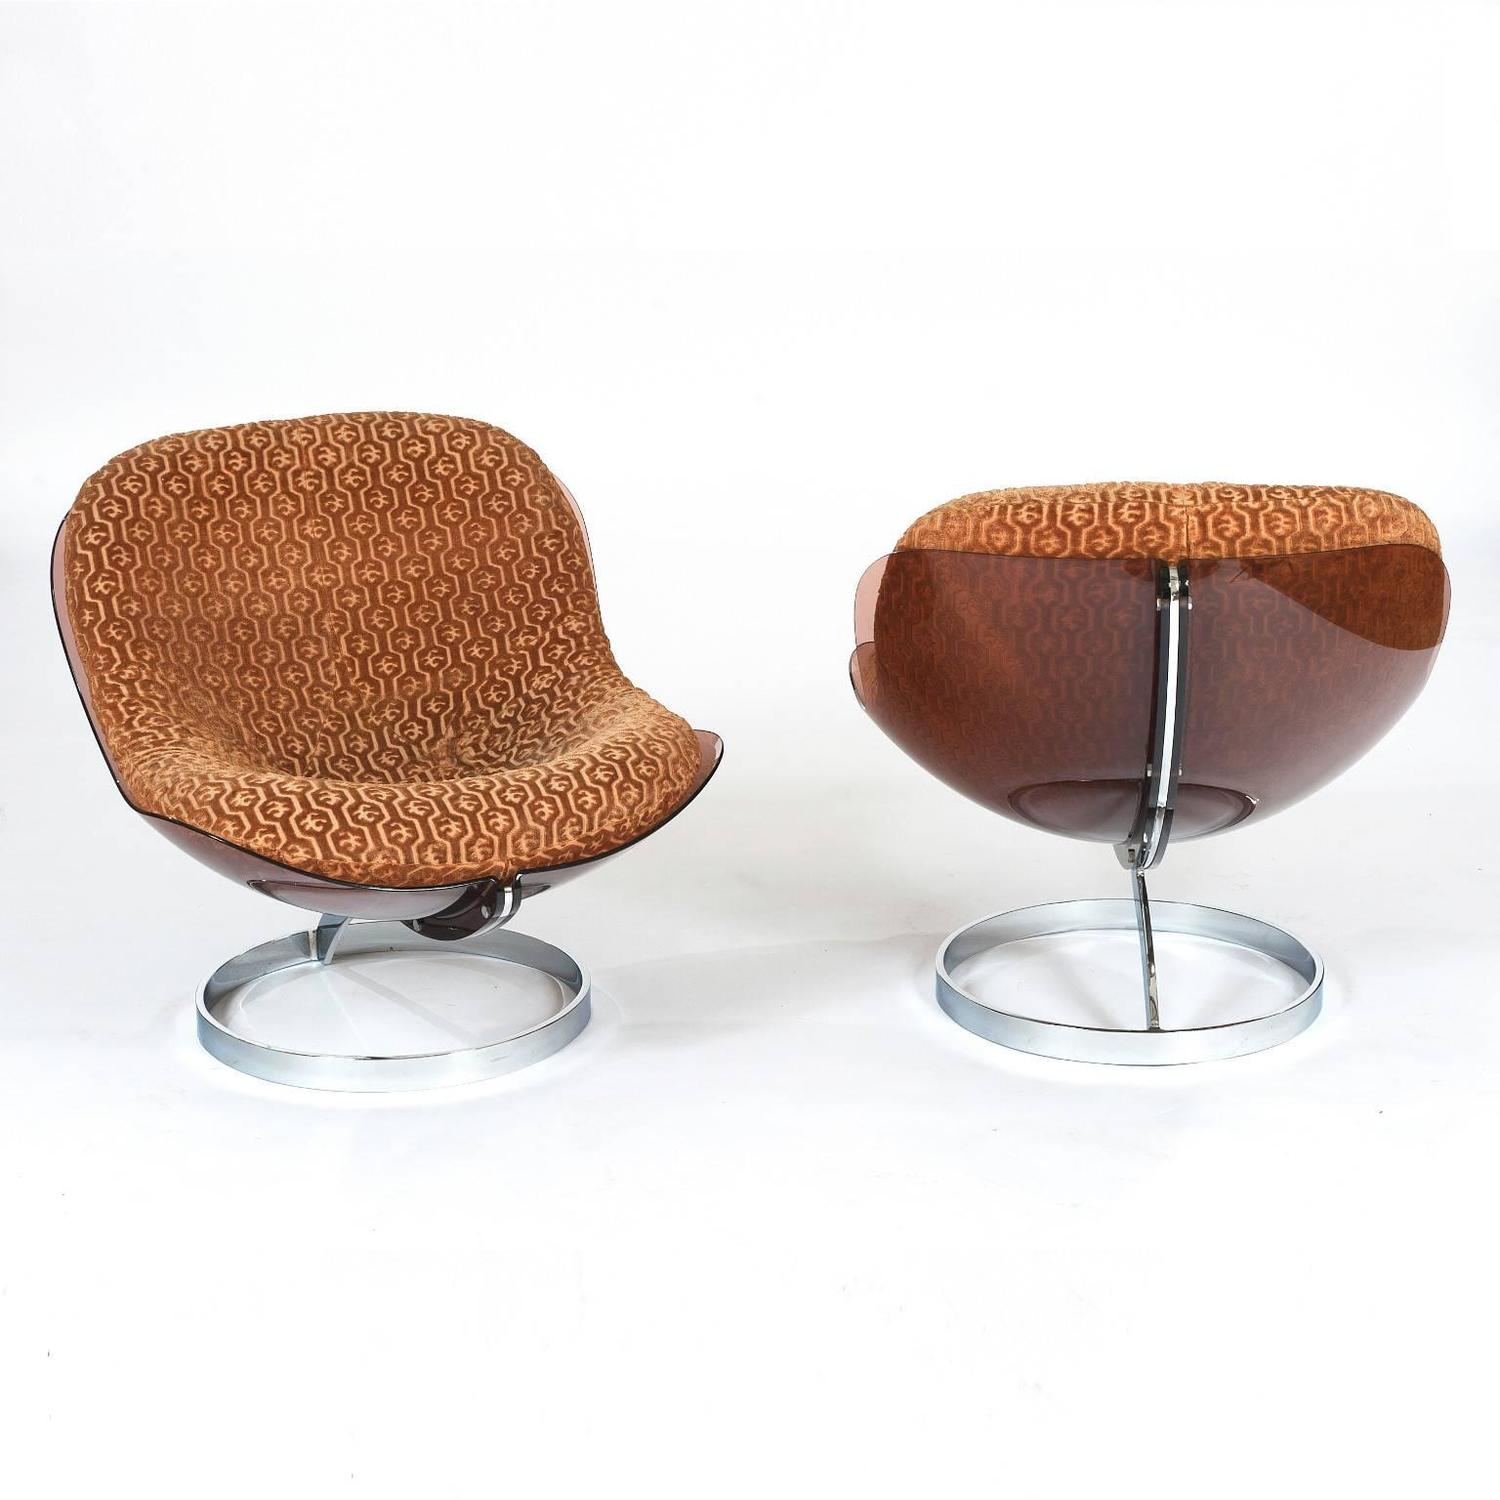 Boris Tabacoff Sphere Lounge Chairs For Sale at 1stdibs